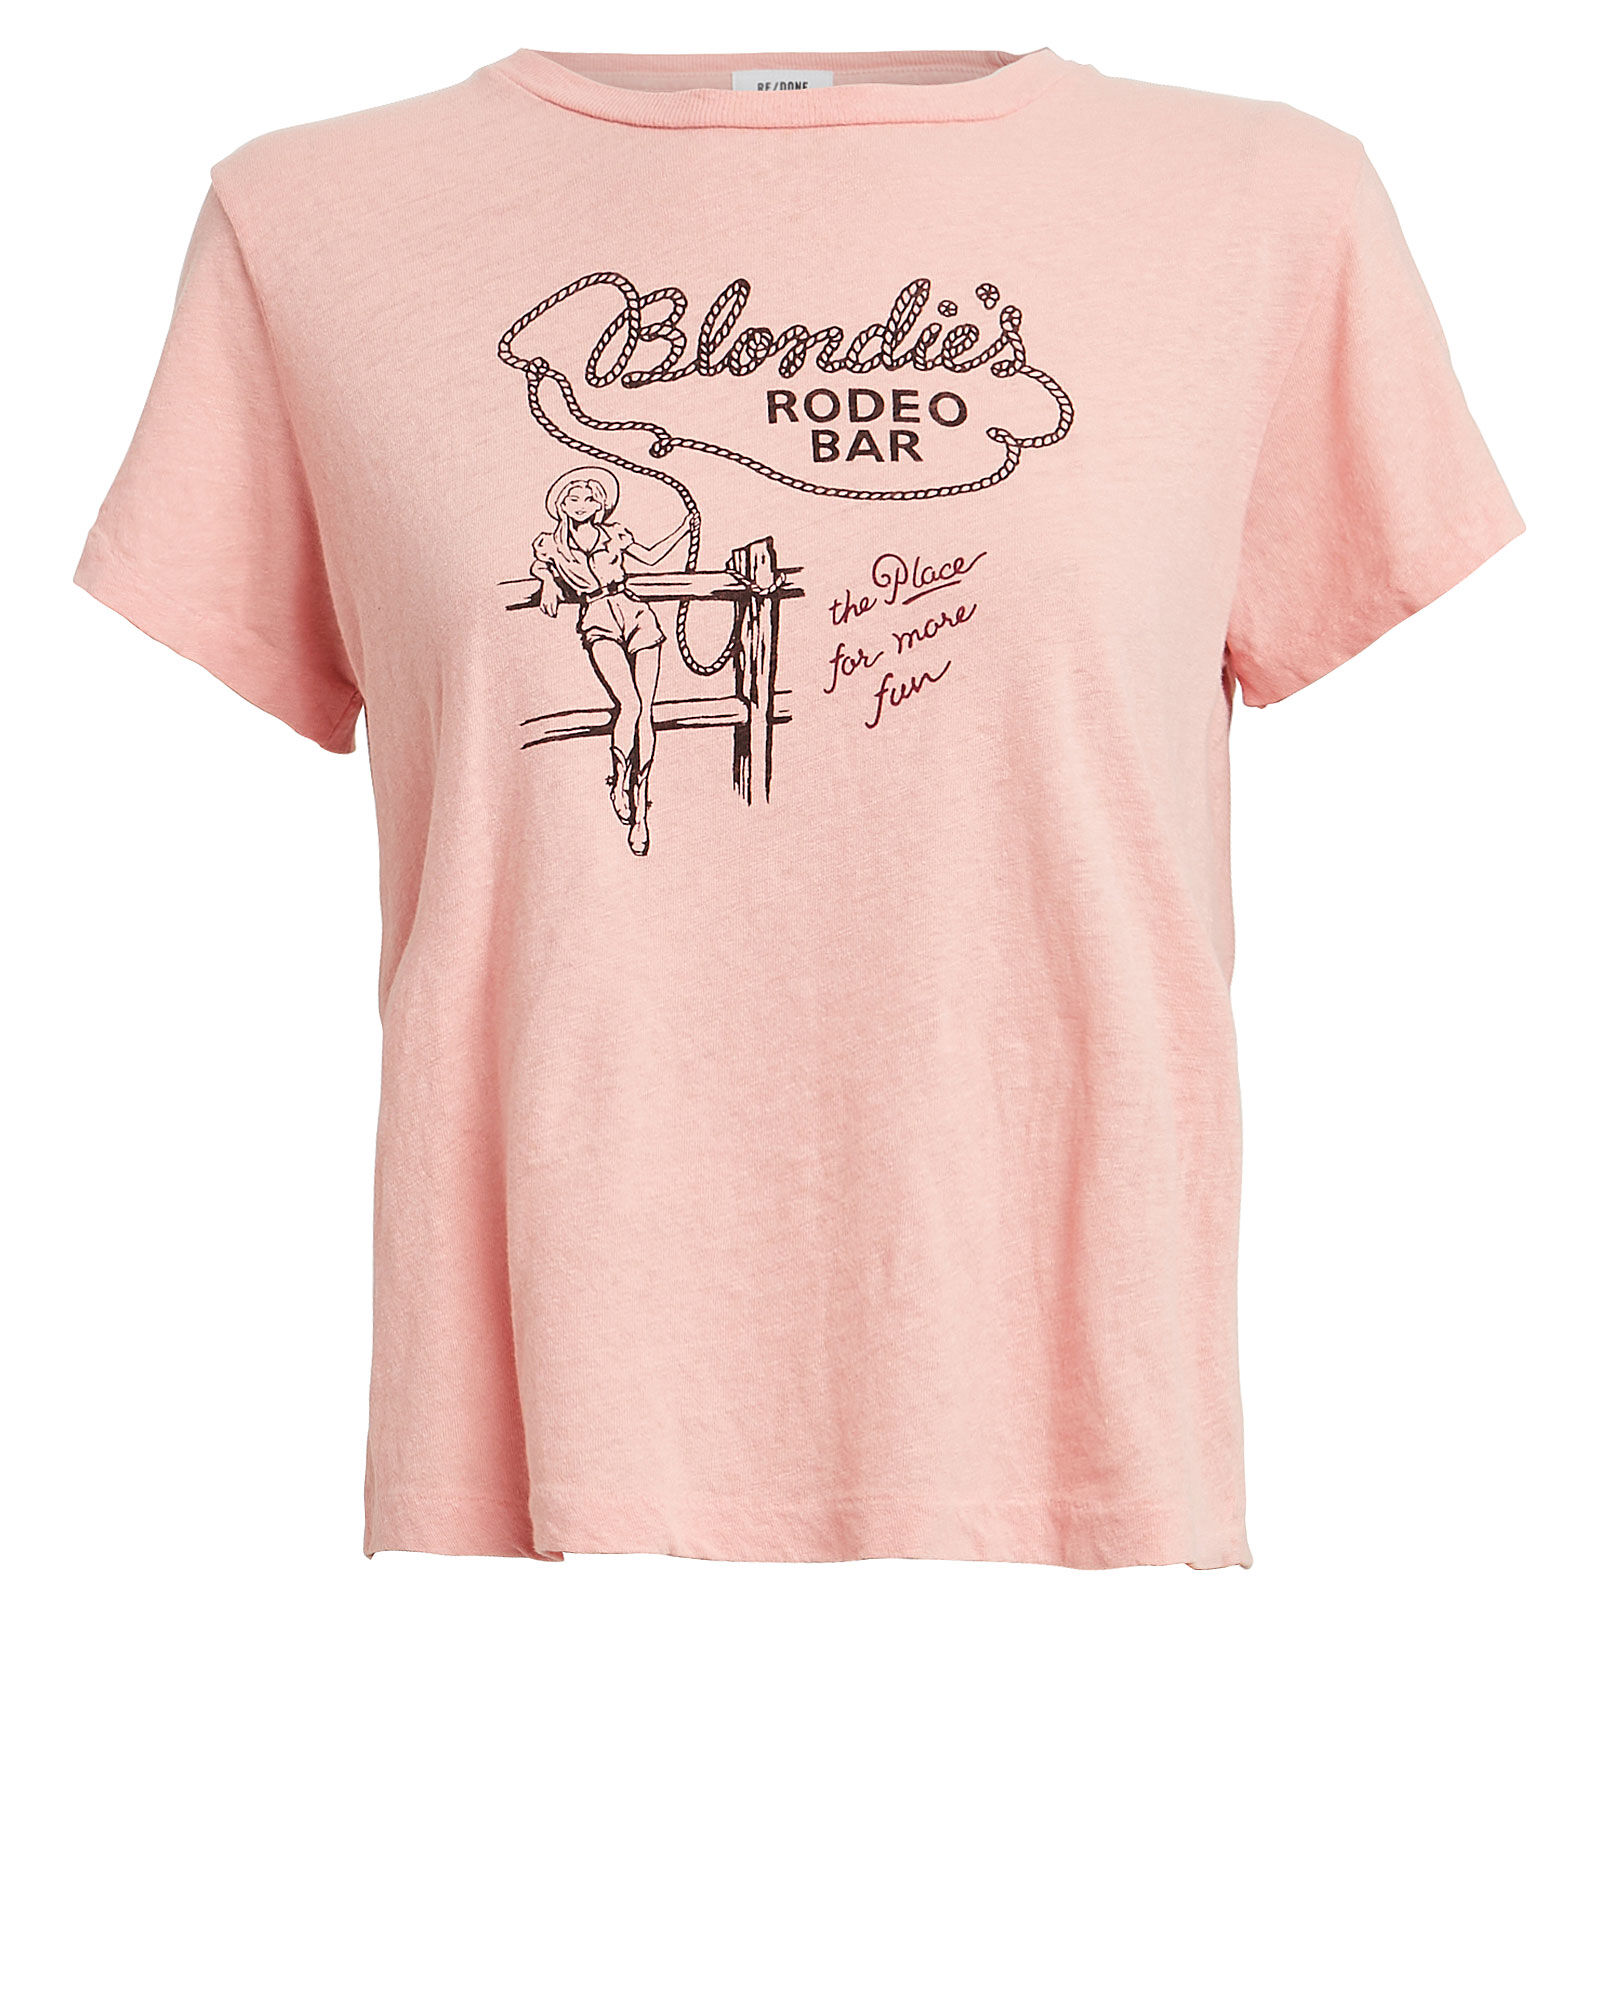 Blondie's Rodeo Bar Classic T-Shirt, PINK, hi-res